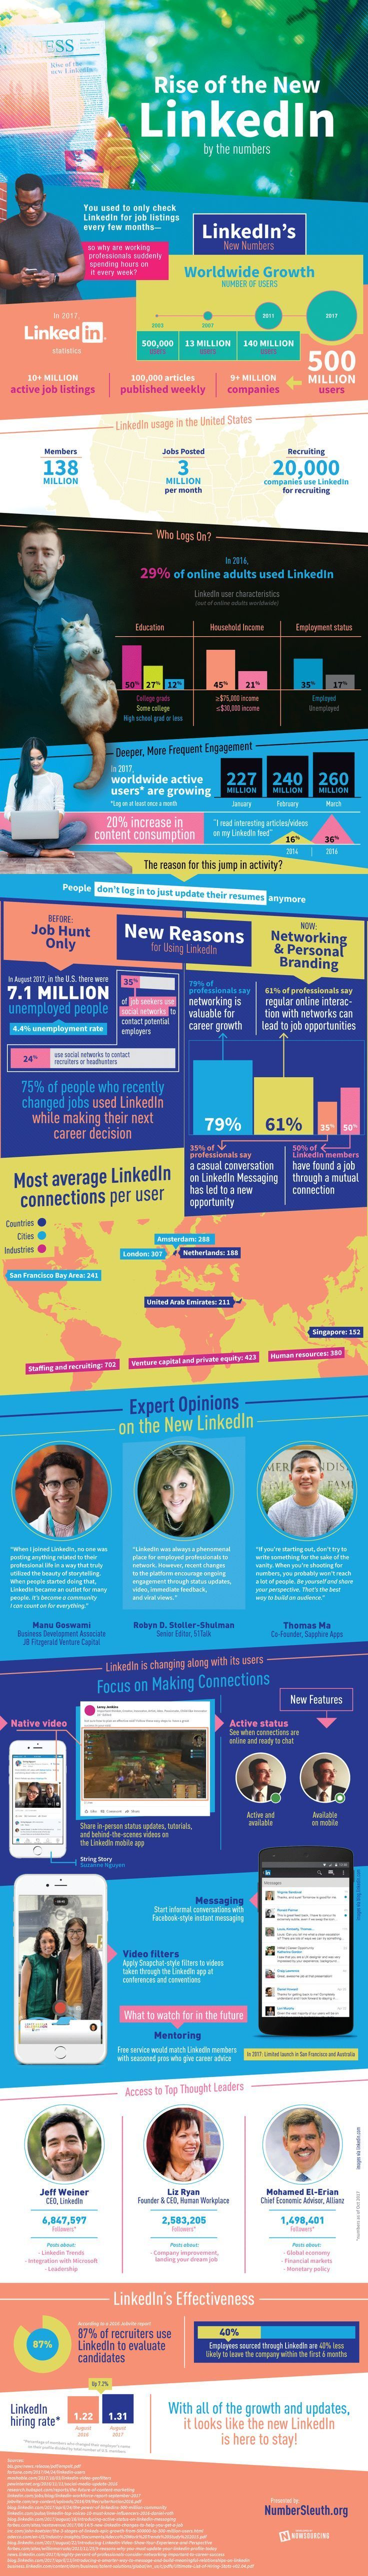 The Silent Rise of LinkedIn to 500M Members What